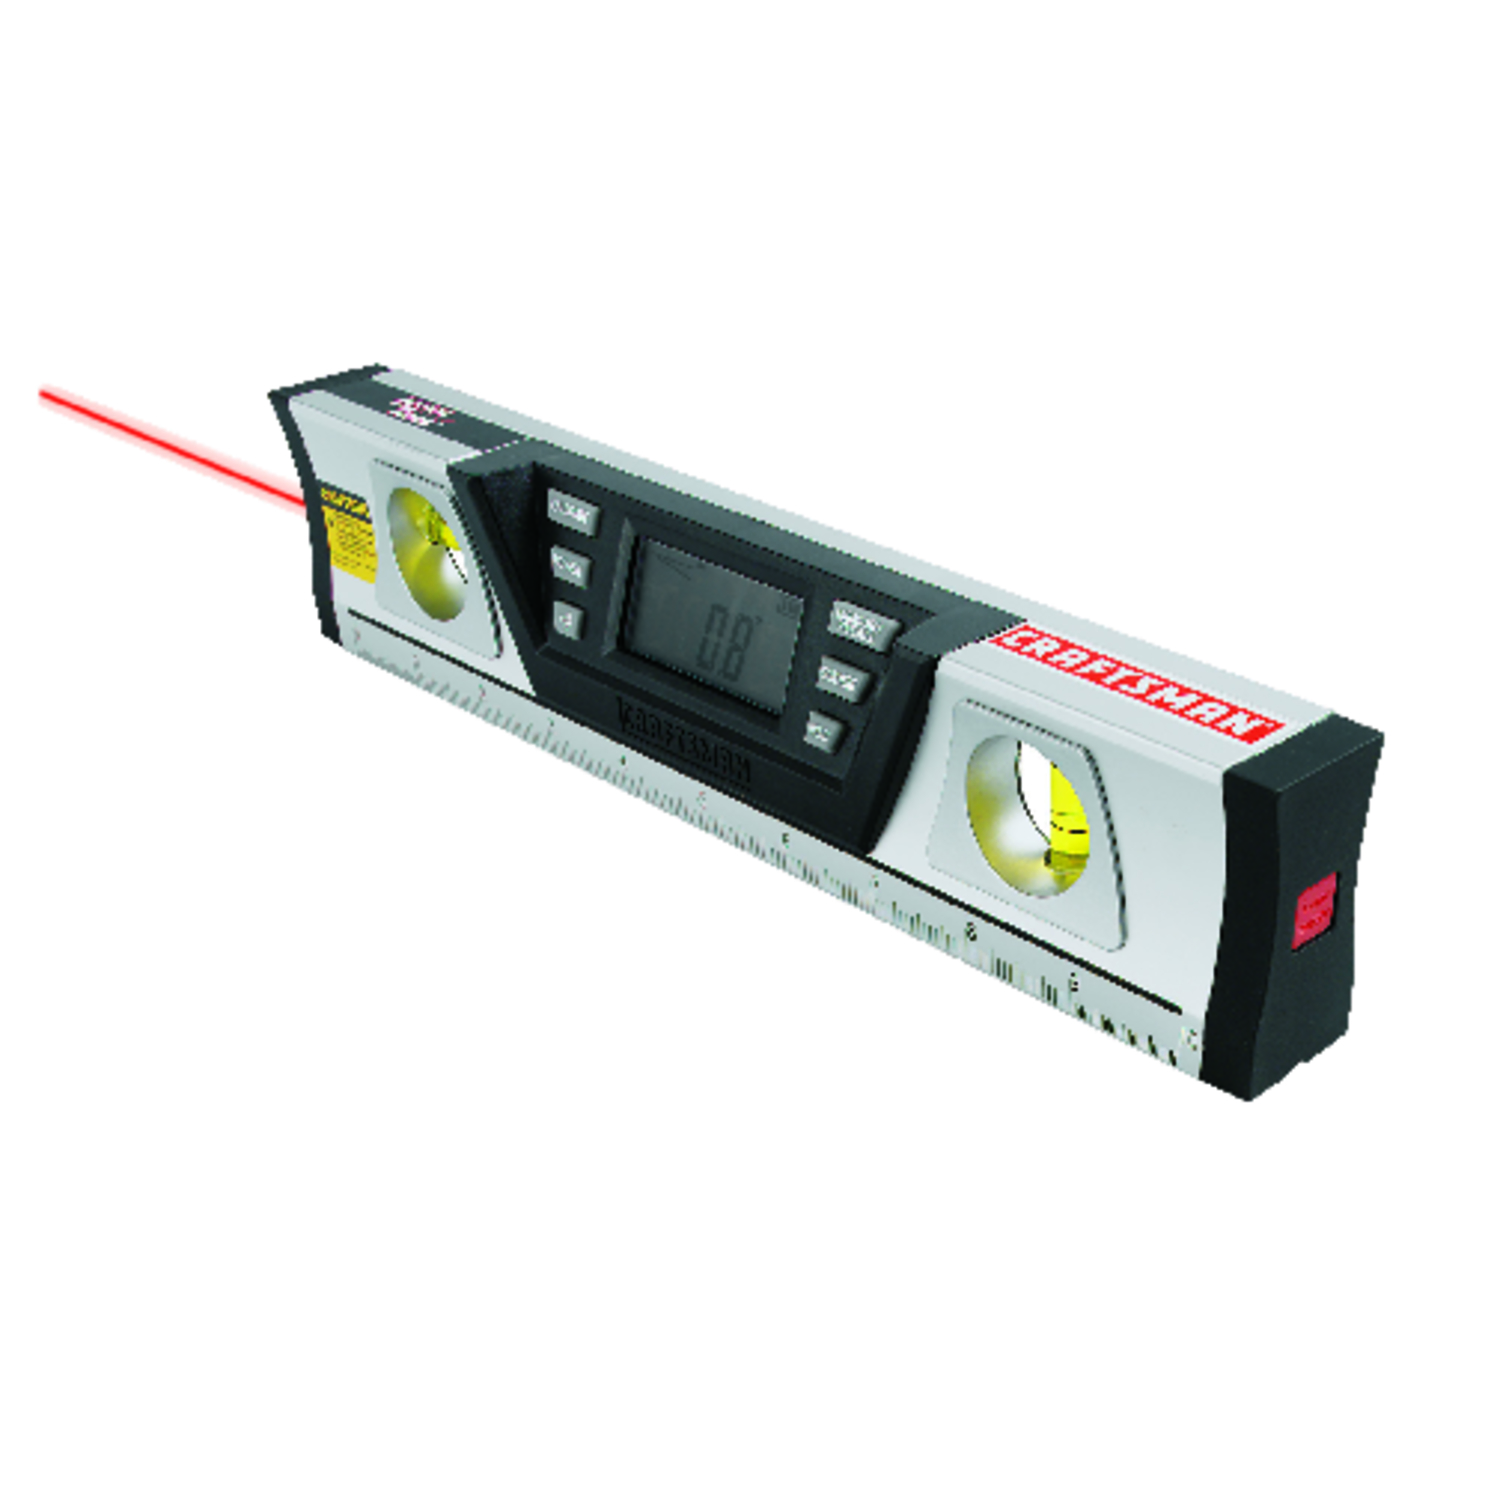 Craftsman  1 beam Digital Level  1 pc.